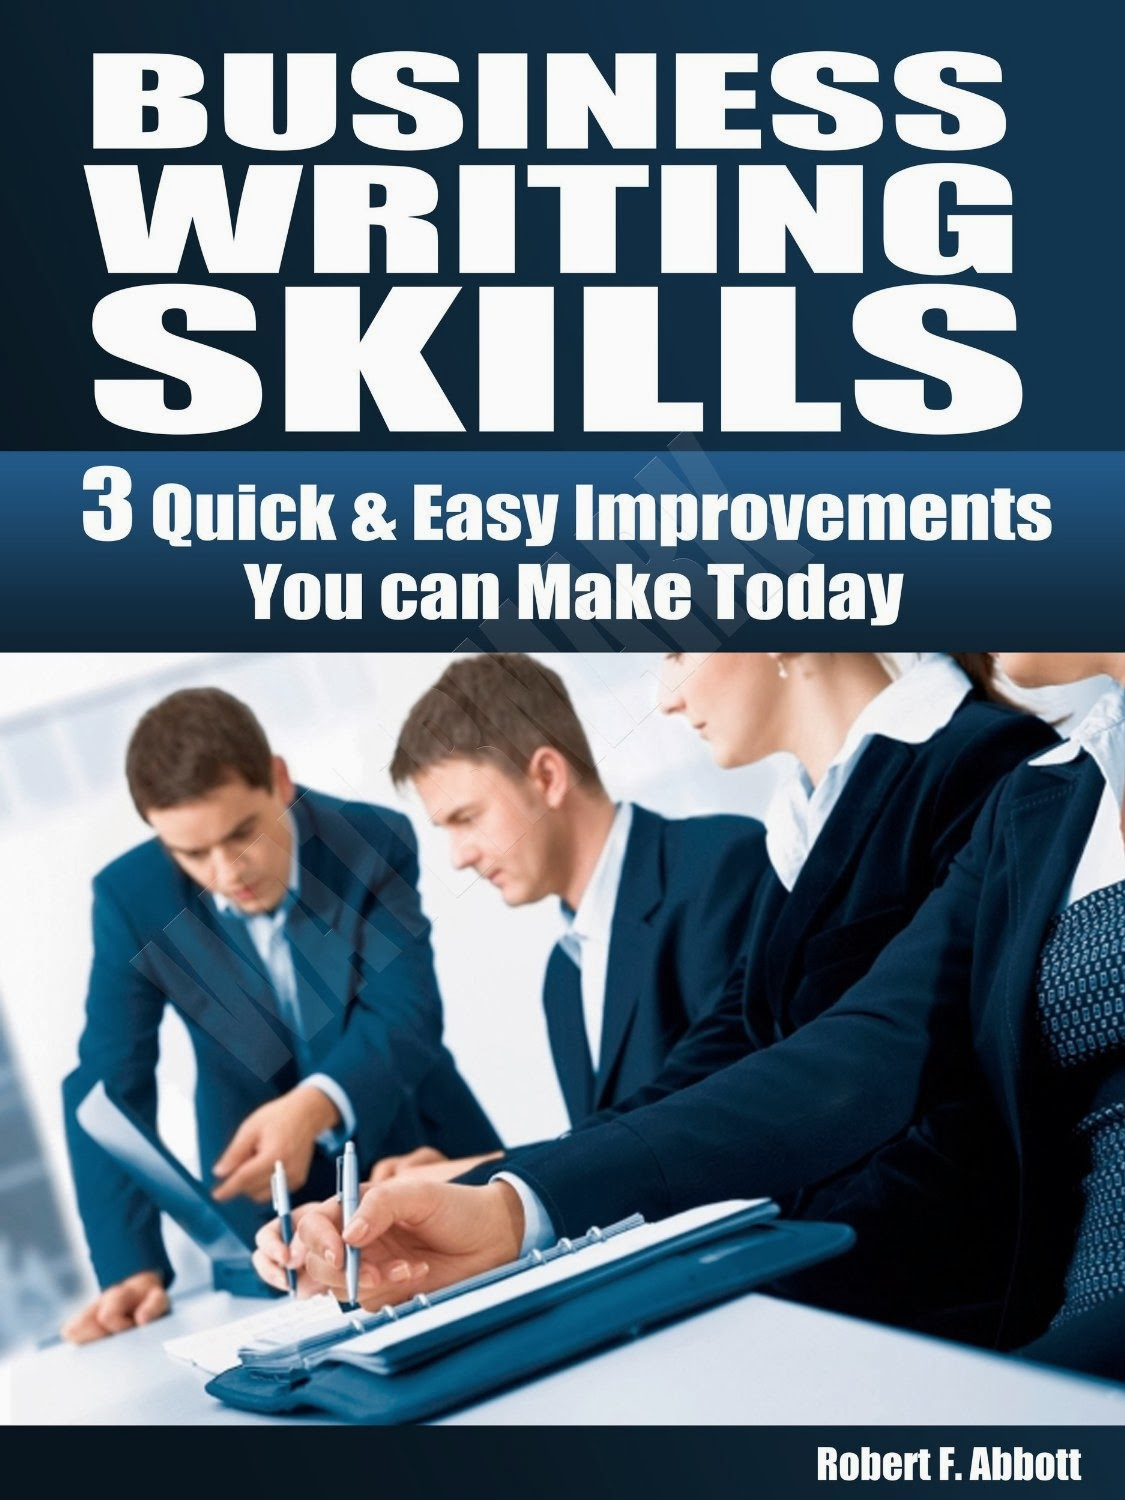 business reports writing skills If you would like to learn how to write a business report in english follow these tips and use the example report as a template on which to base your own business report first of all, business reports provide important information for management that is timely and factual english learners writing.